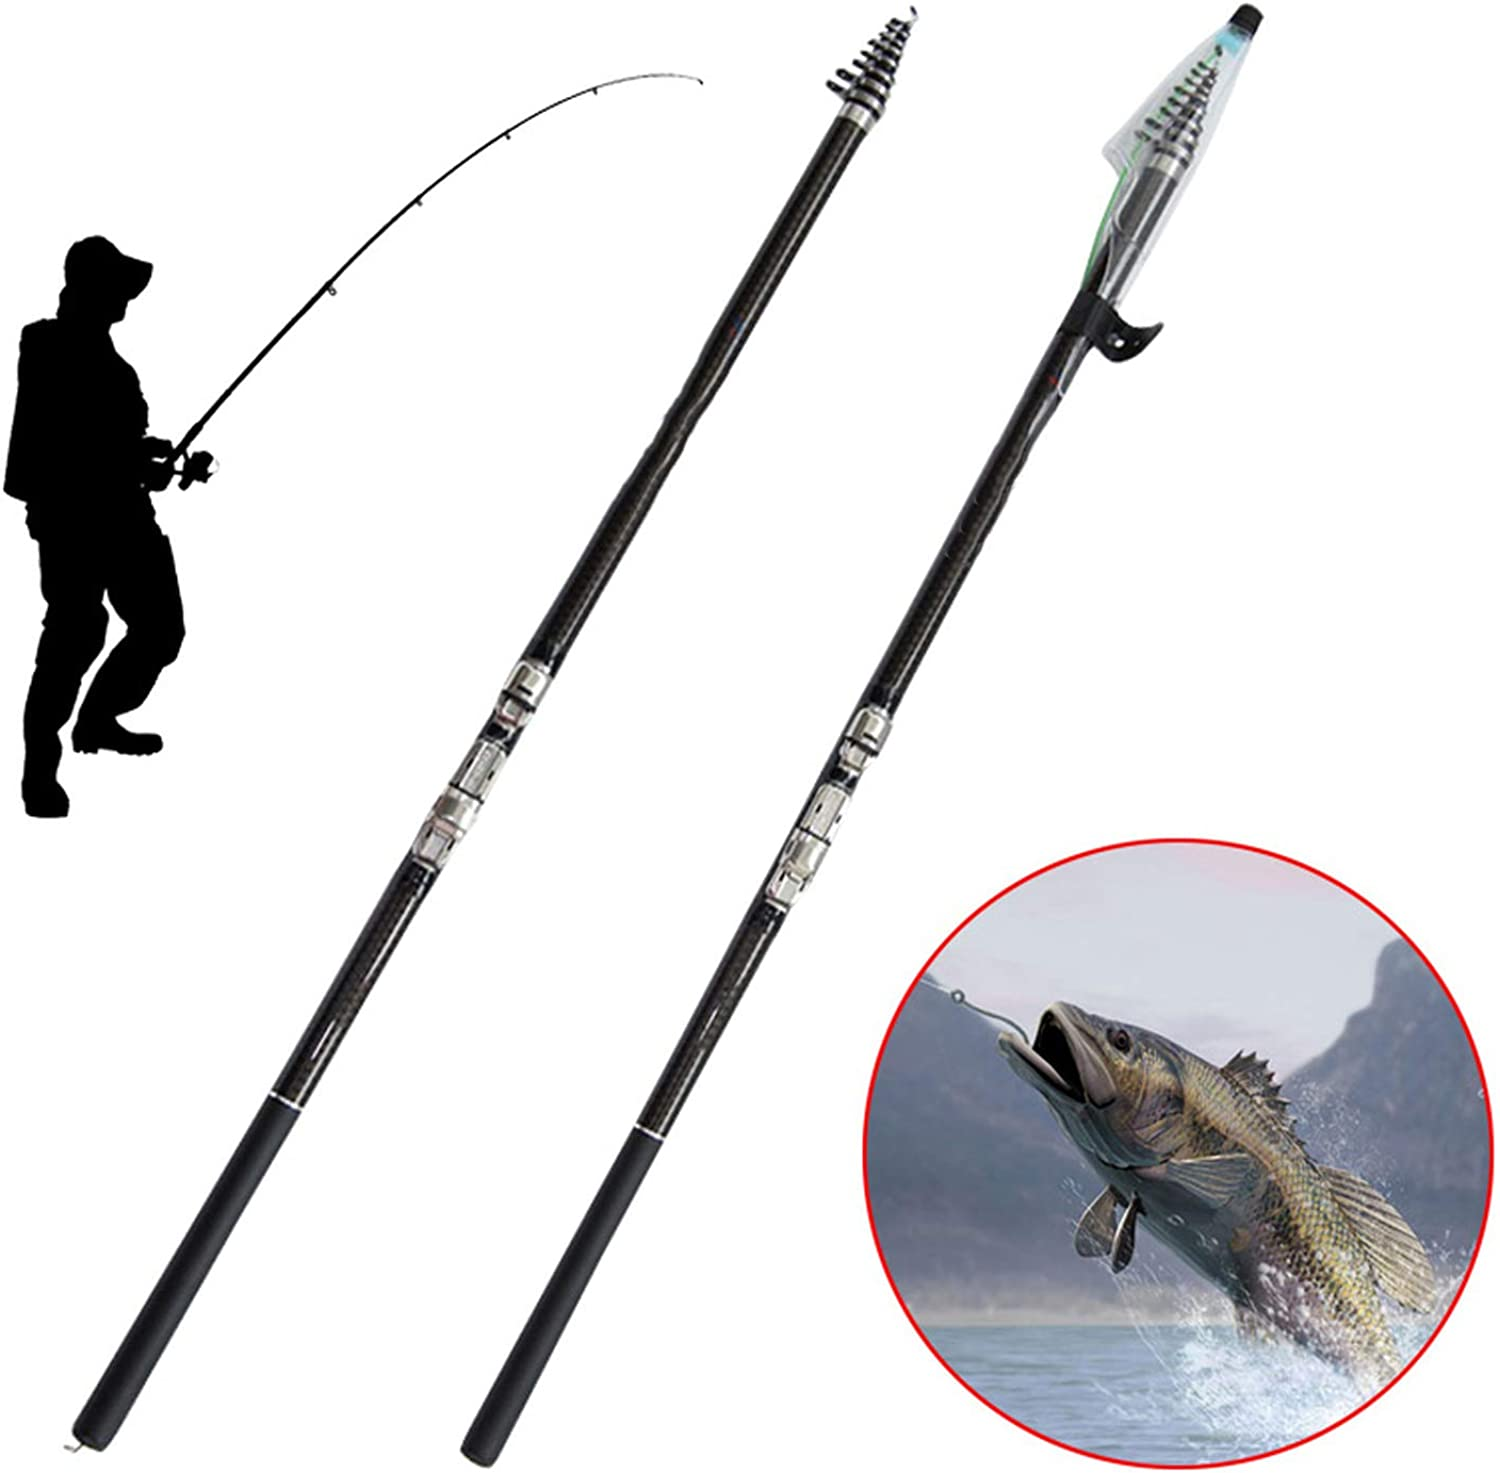 Portable Carbon Fiber Telescopic Fishing Rod Spinning Reel Outdoor Sports Travel Fishing Parts